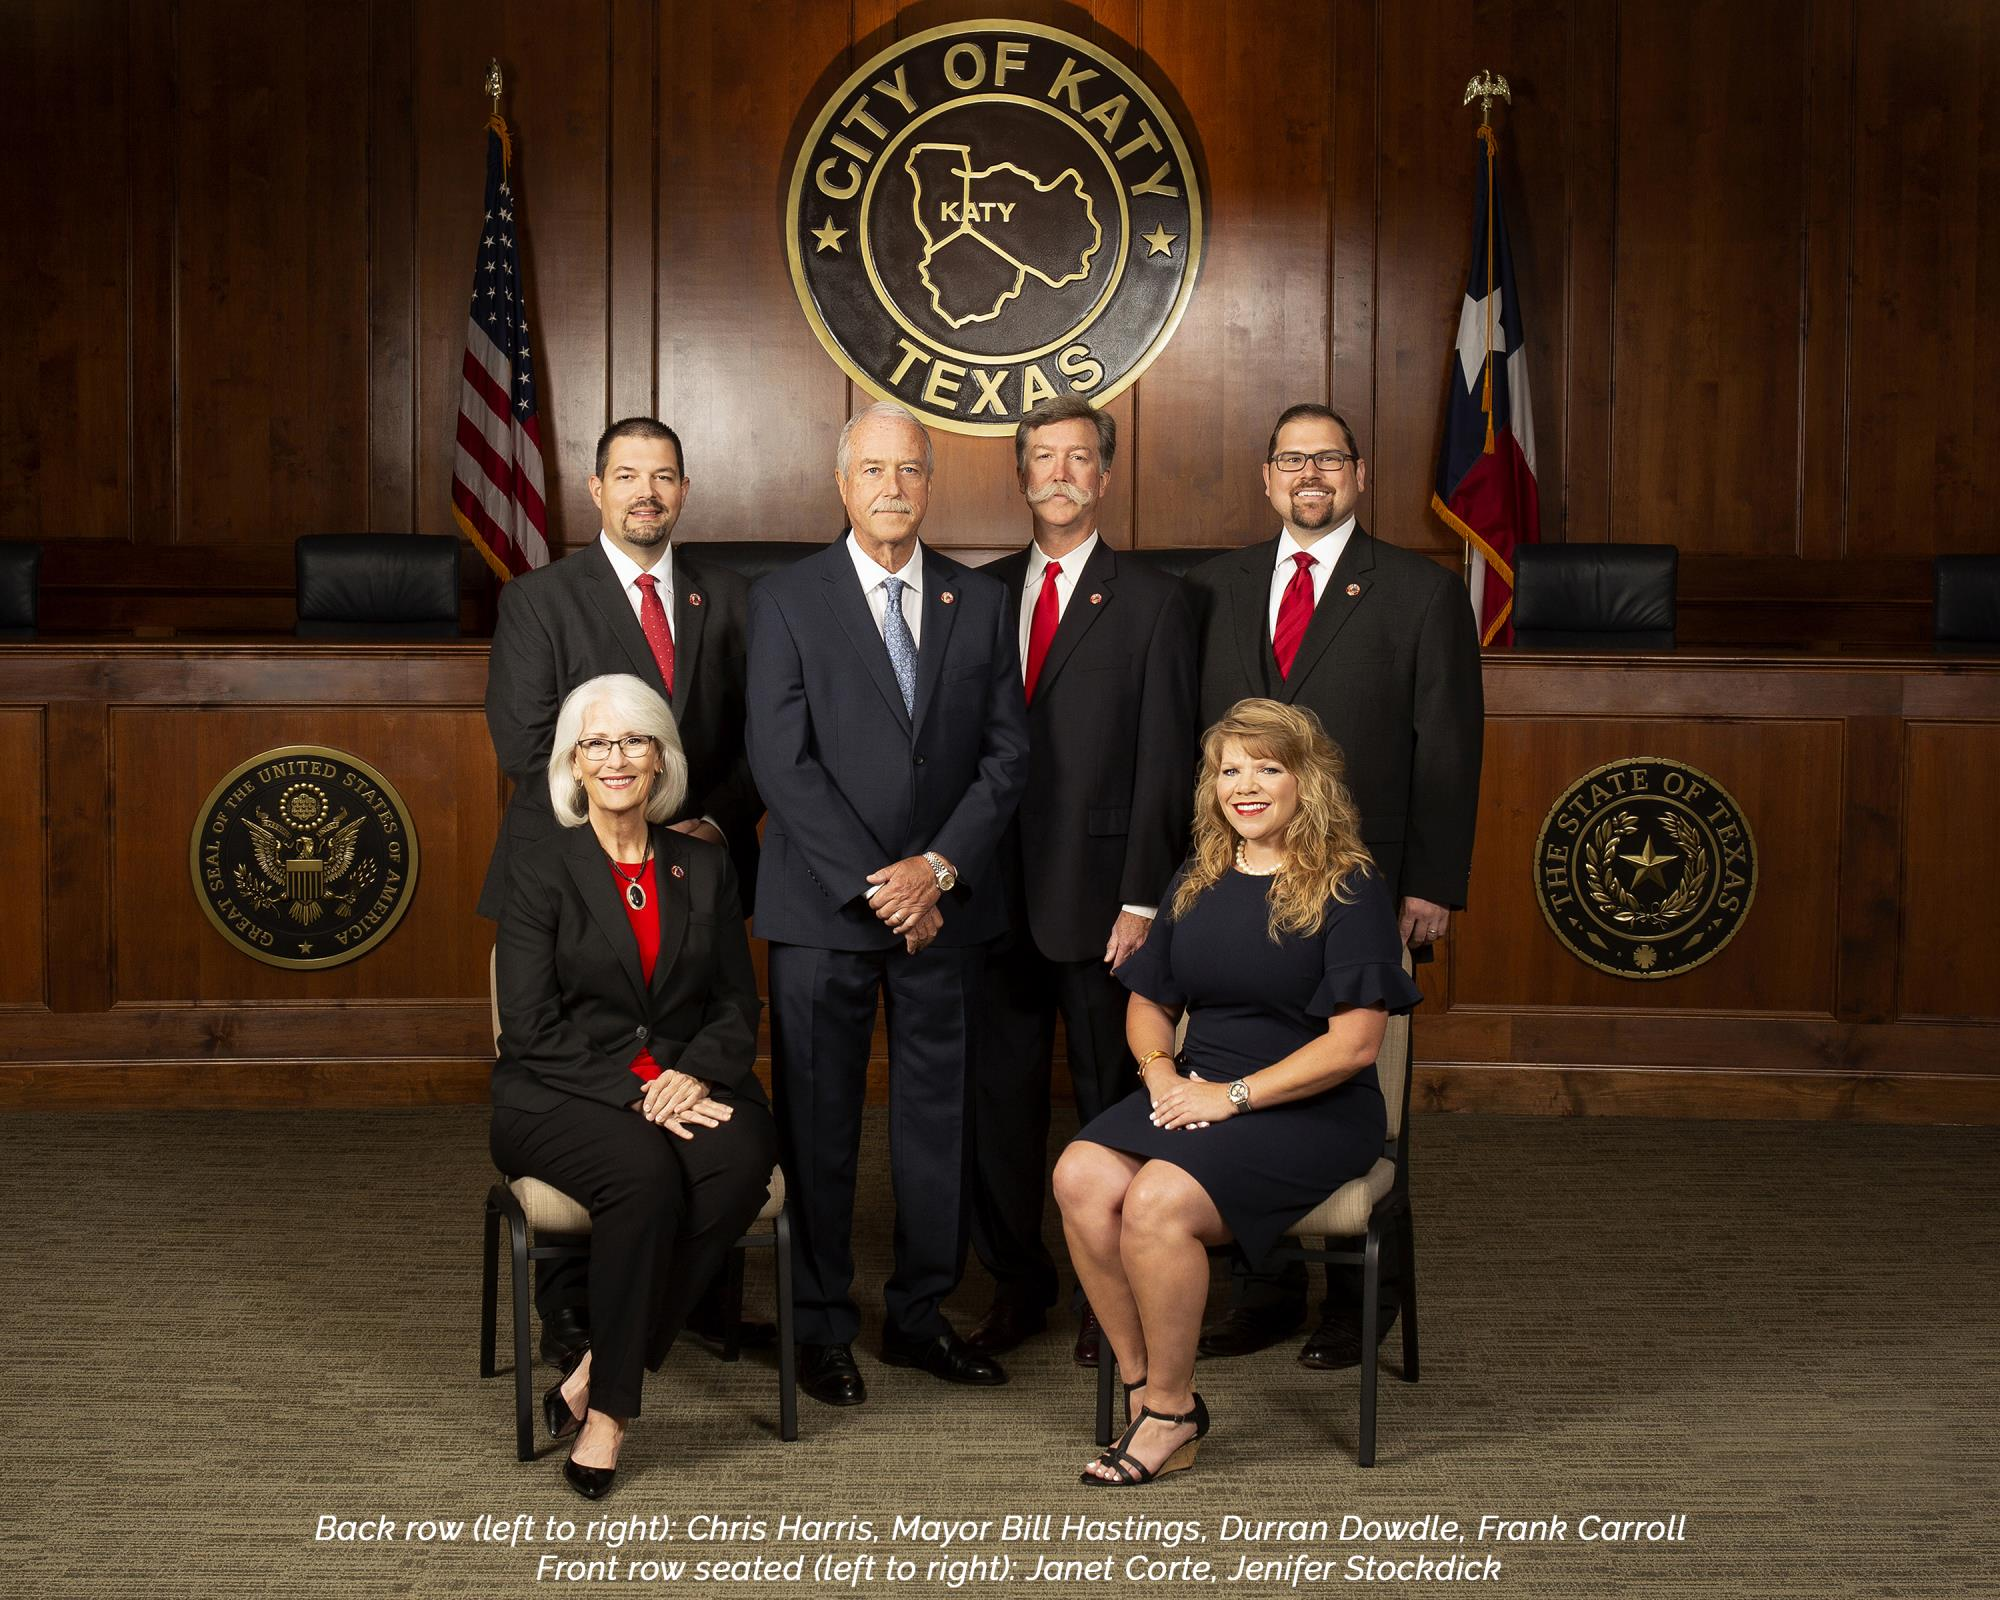 2019 City of Katy Council with caption